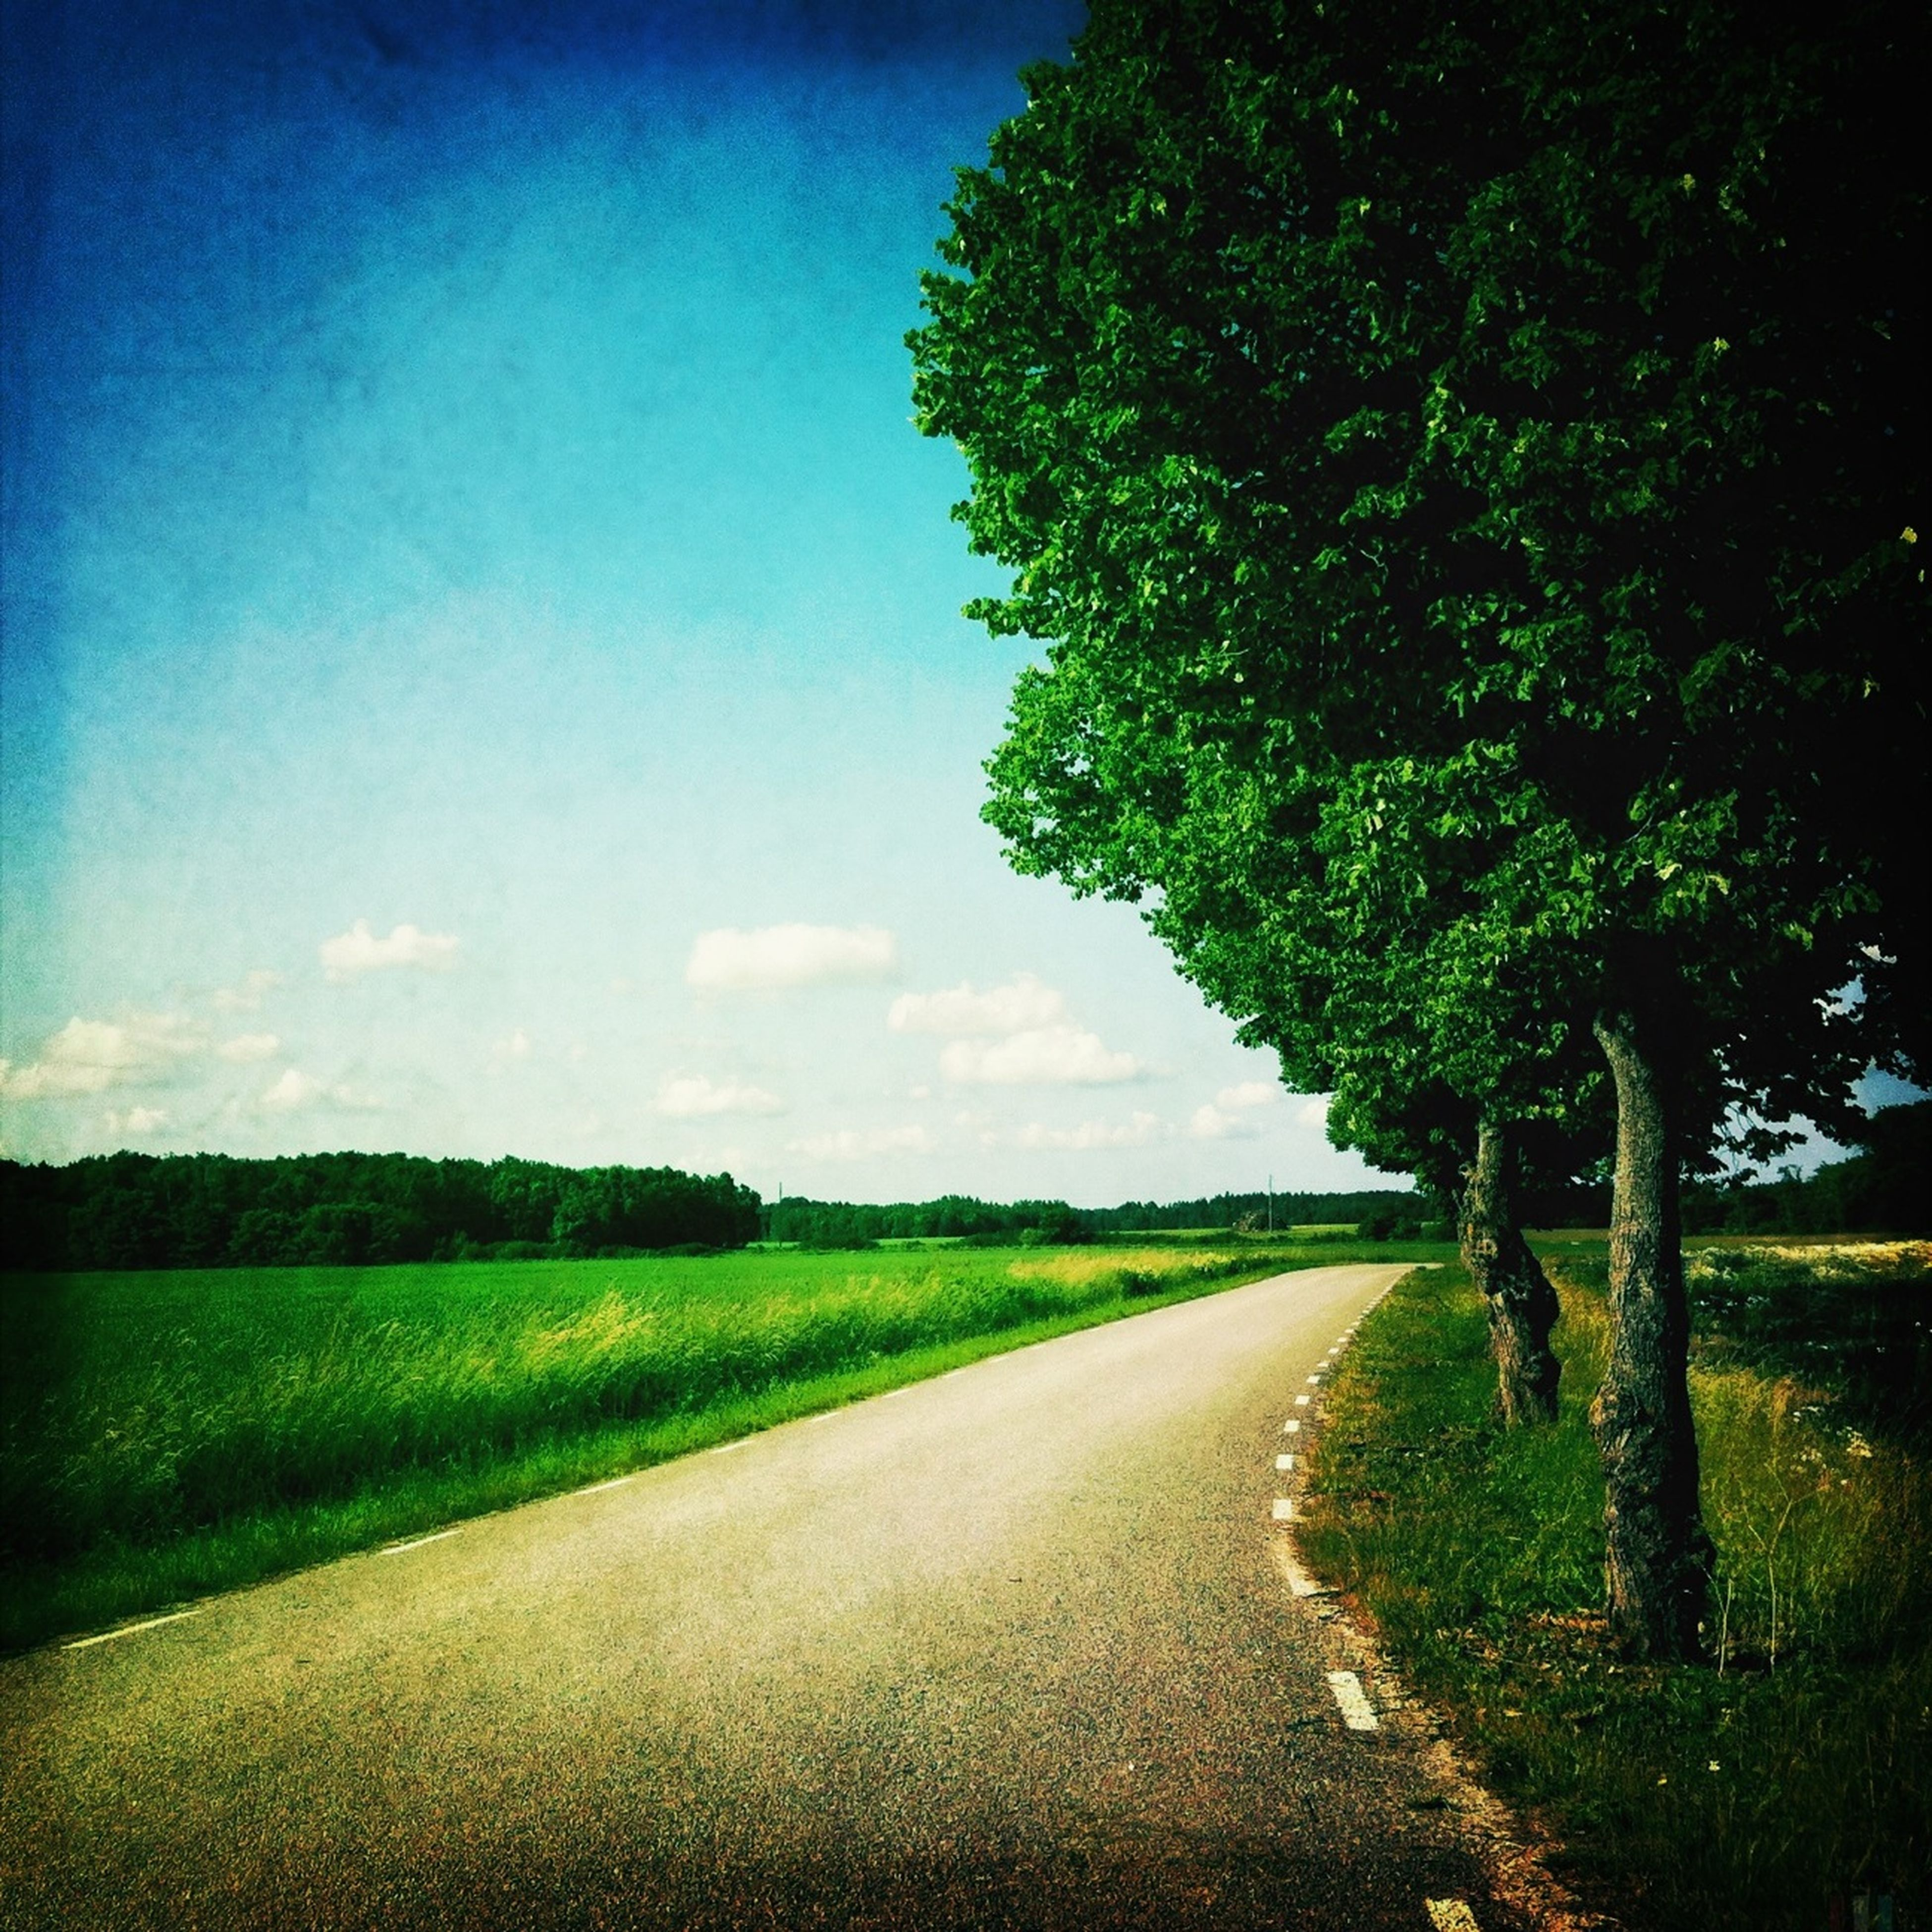 the way forward, tree, road, tranquility, tranquil scene, landscape, field, sky, country road, diminishing perspective, transportation, nature, grass, vanishing point, rural scene, growth, beauty in nature, scenics, empty, dirt road